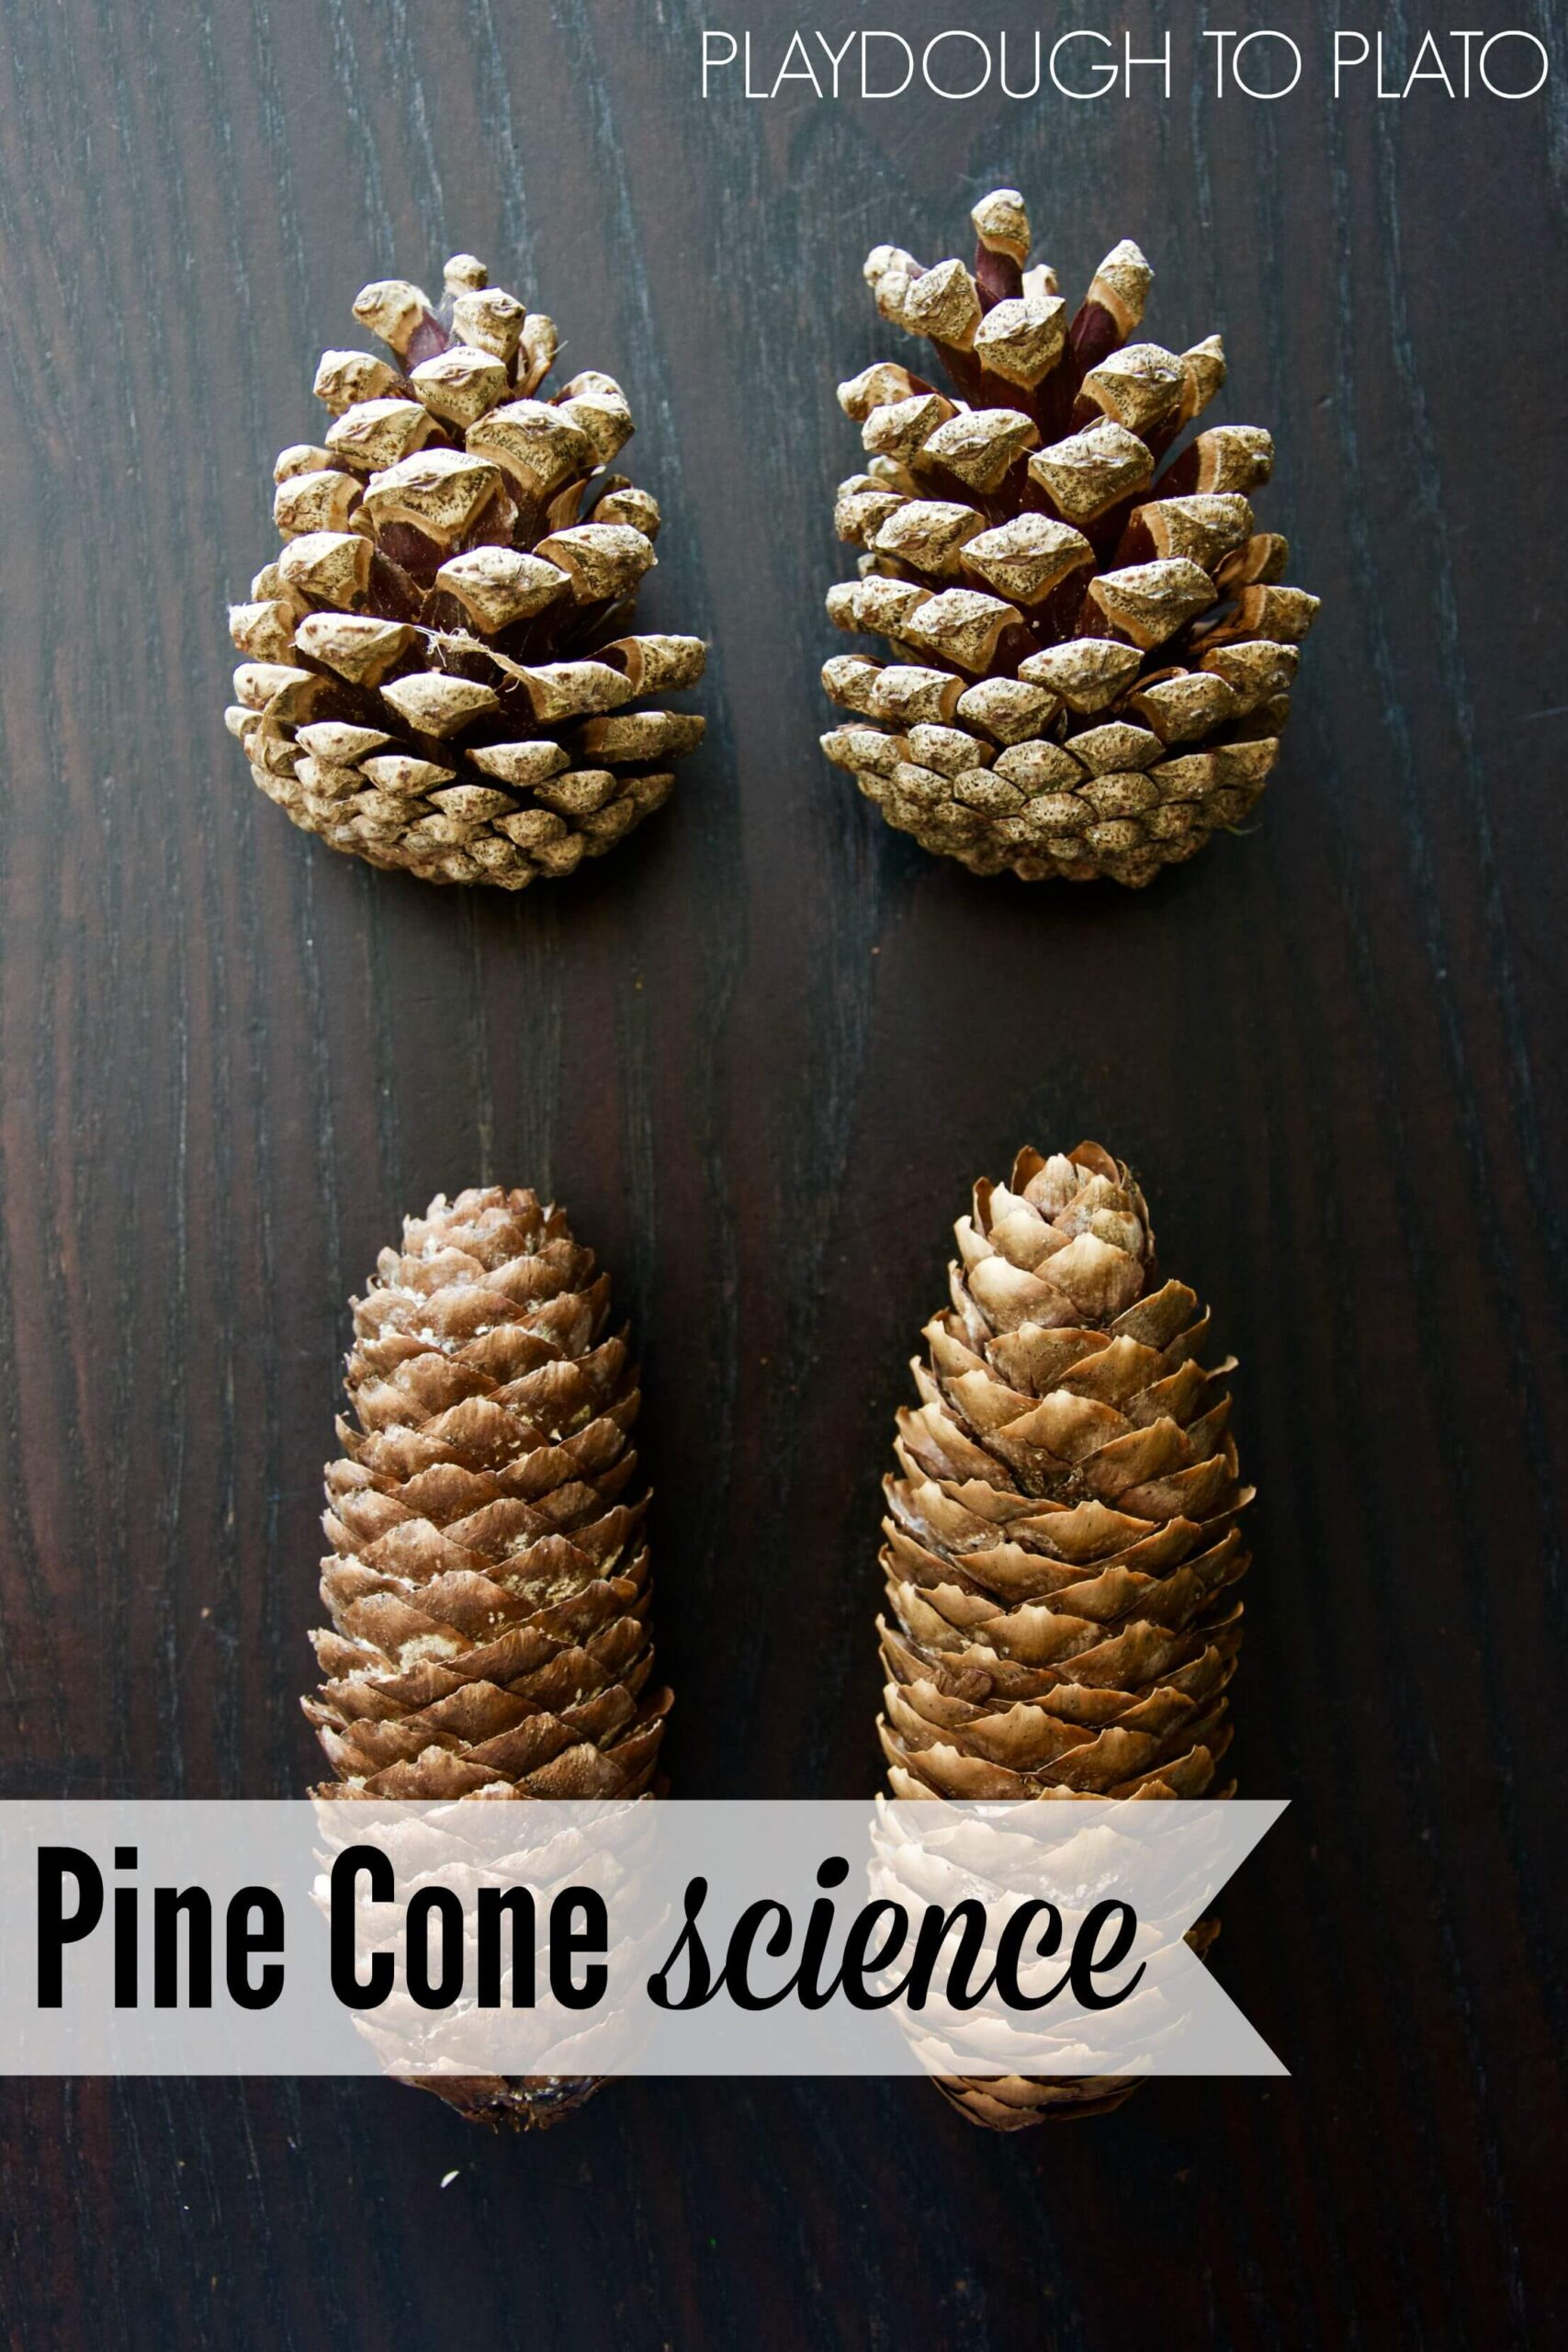 Pine Cone Science